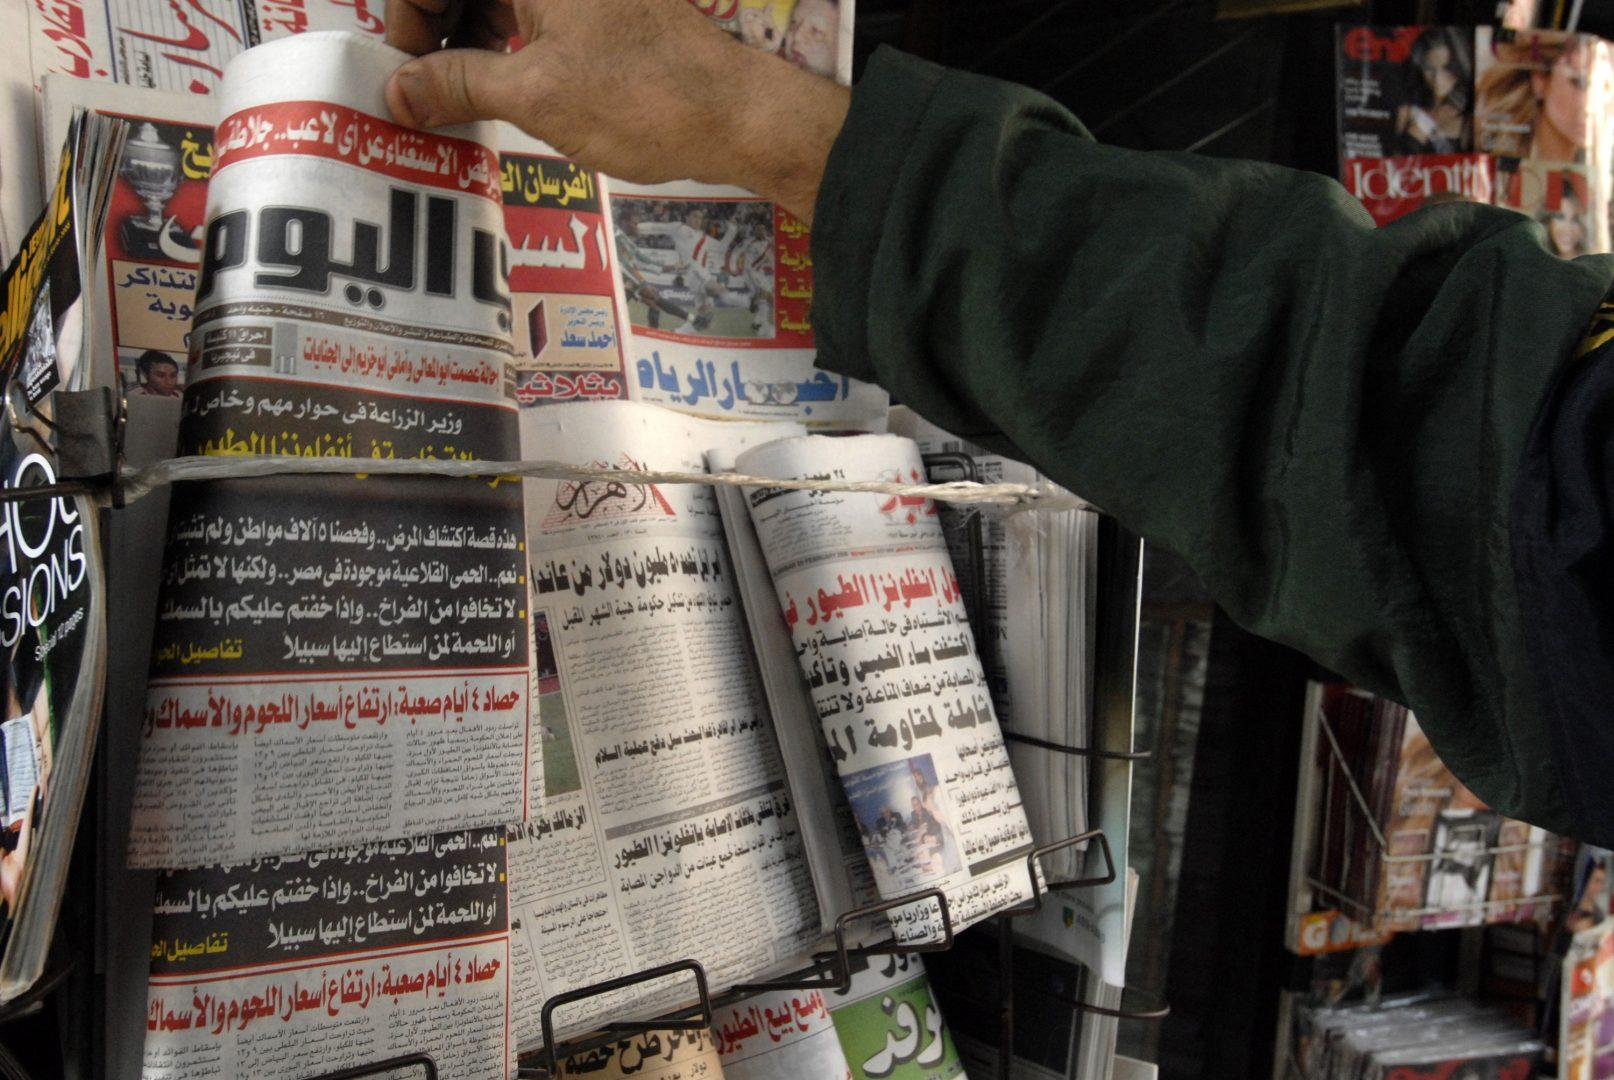 The Press Crackdown in Egypt Hurts Everyone